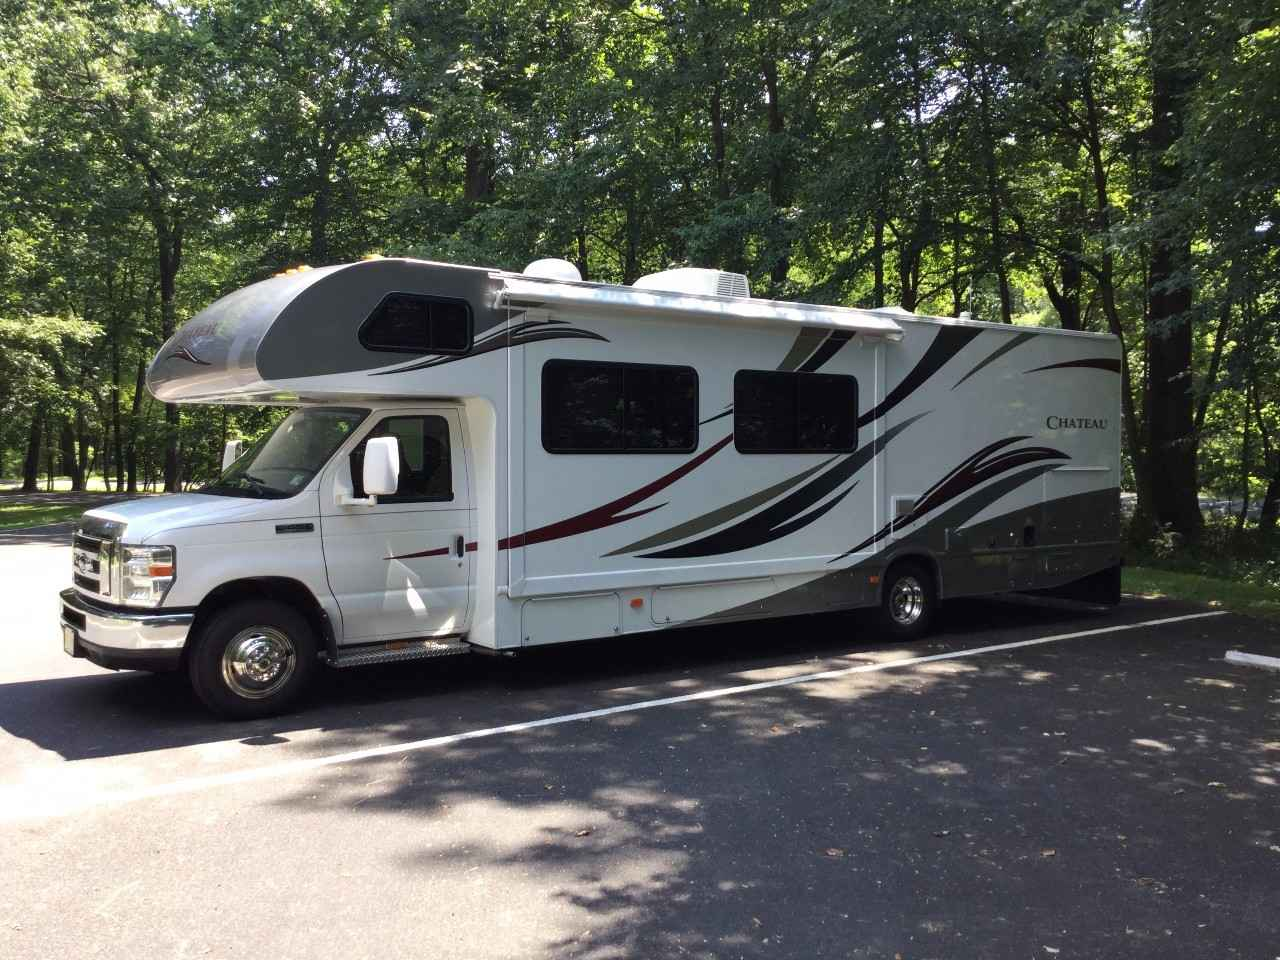 2013 Used Thor Motor Coach Chateau 31l Class C In New